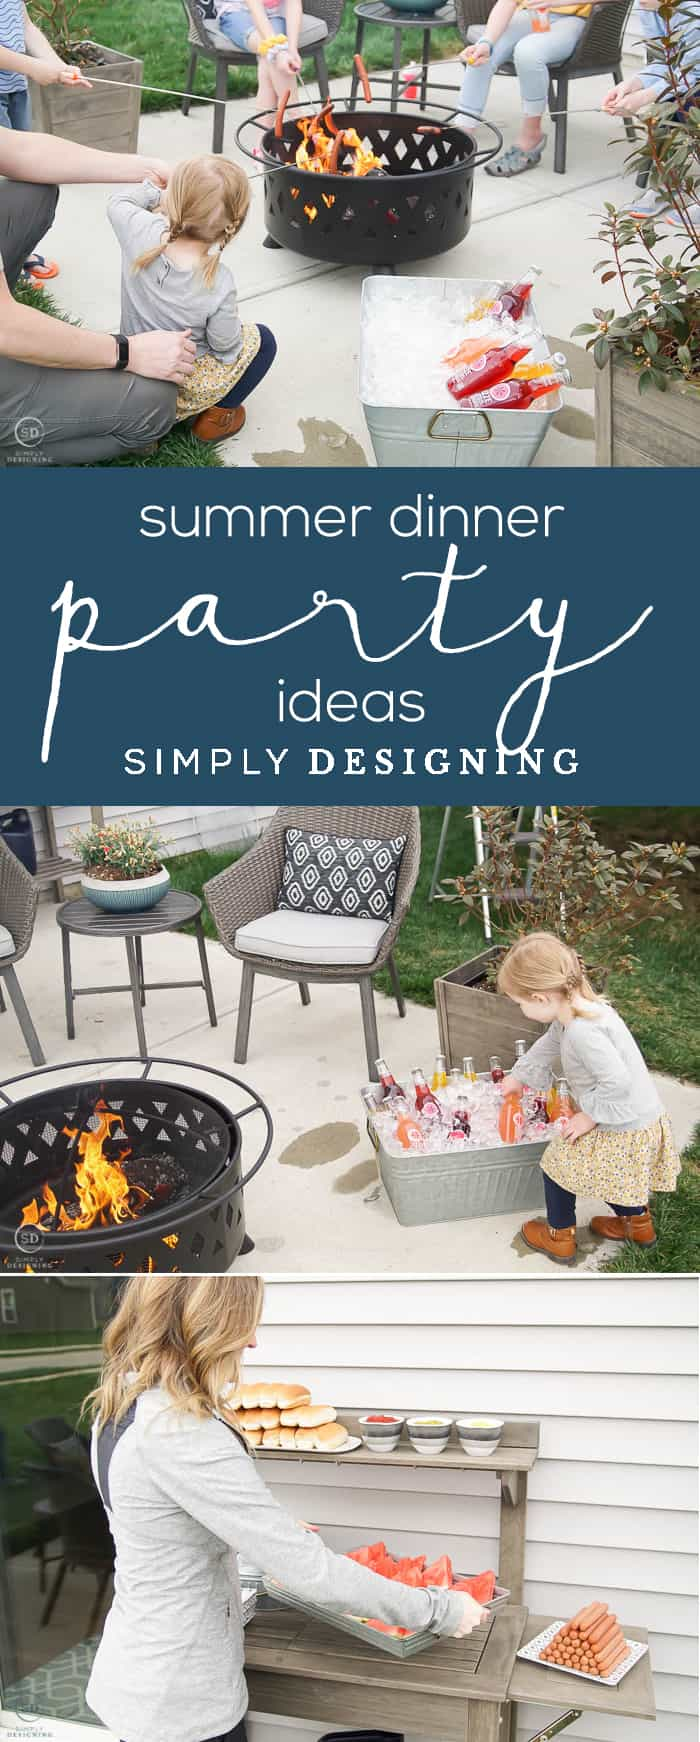 Summer Dinner Party Idea - these family friendly summer dinner party ideas are so fun and easy